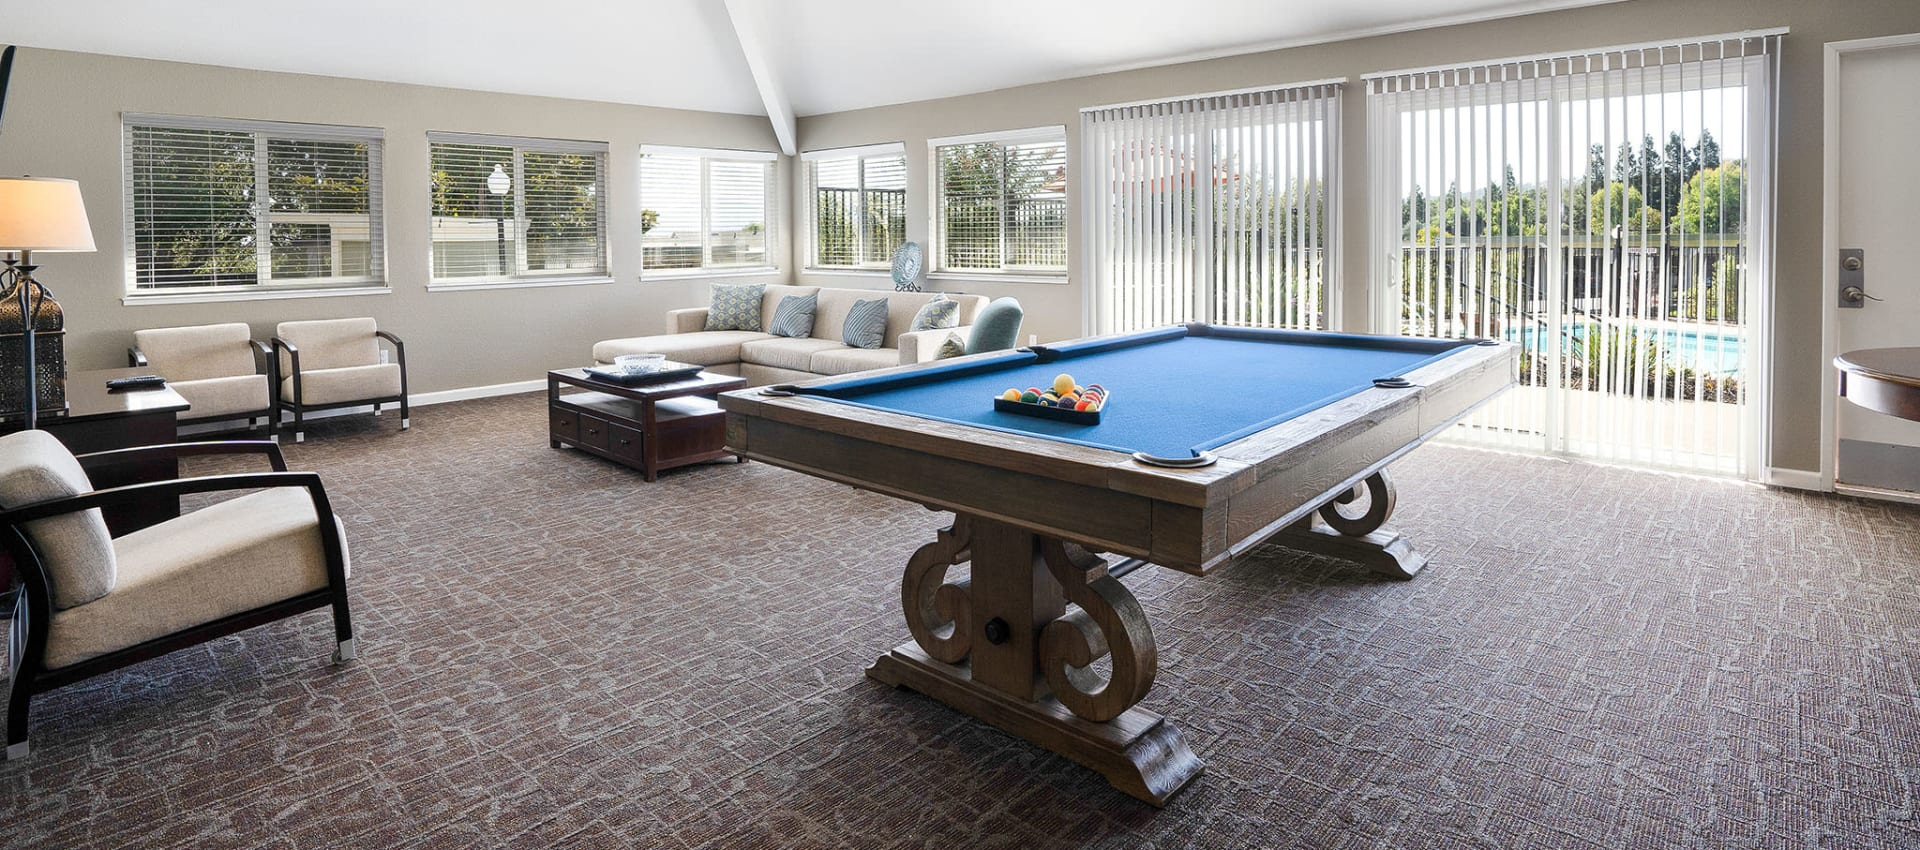 Pool table at Ridgecrest Apartment Homes in Martinez, California